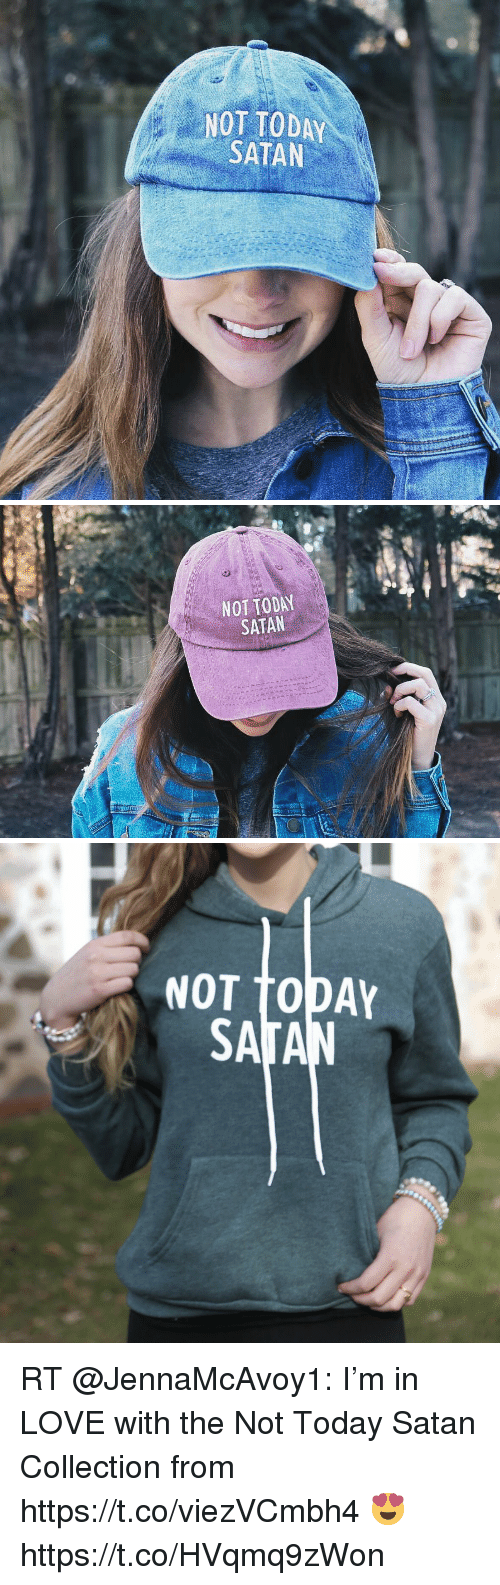 Love, Memes, and Today: NOT TODAY  SATAN   NOT TODAY  SATAN   NOT TODAY RT @JennaMcAvoy1: I'm in LOVE with the Not Today Satan Collection from https://t.co/viezVCmbh4 😍 https://t.co/HVqmq9zWon